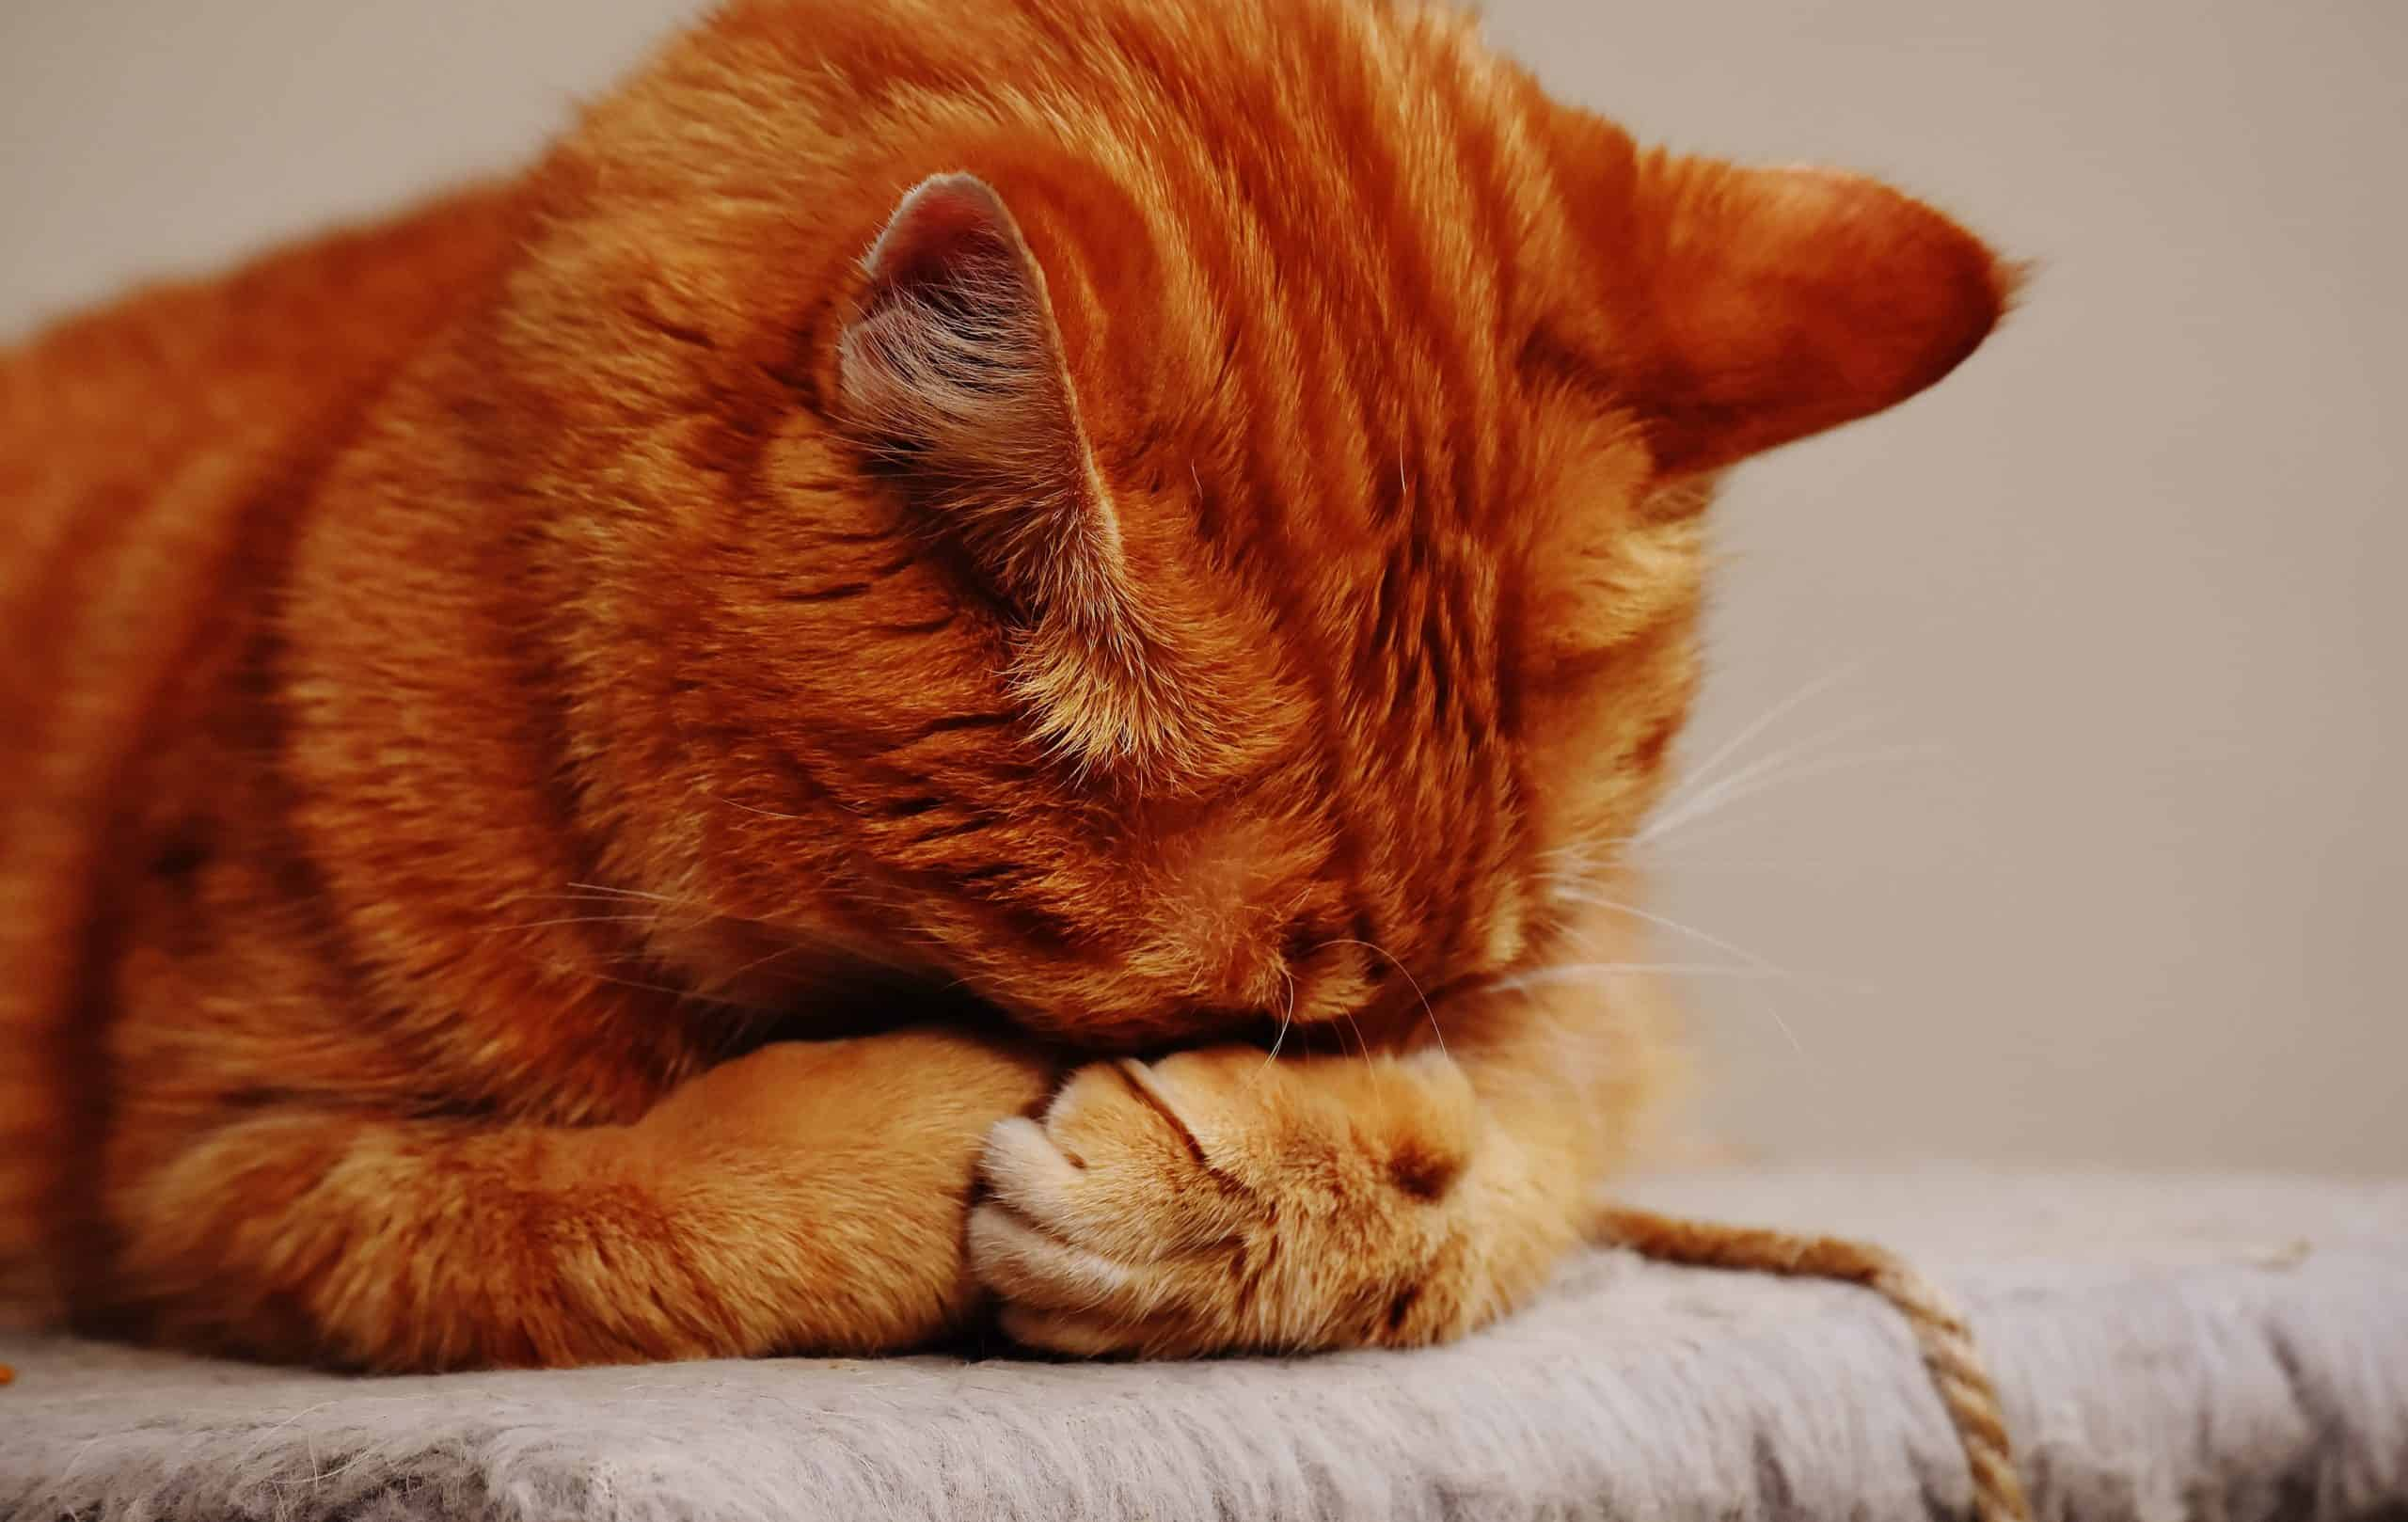 Cat Care Tips - How To Keep Your Cat From Being A Super-Playful Cat